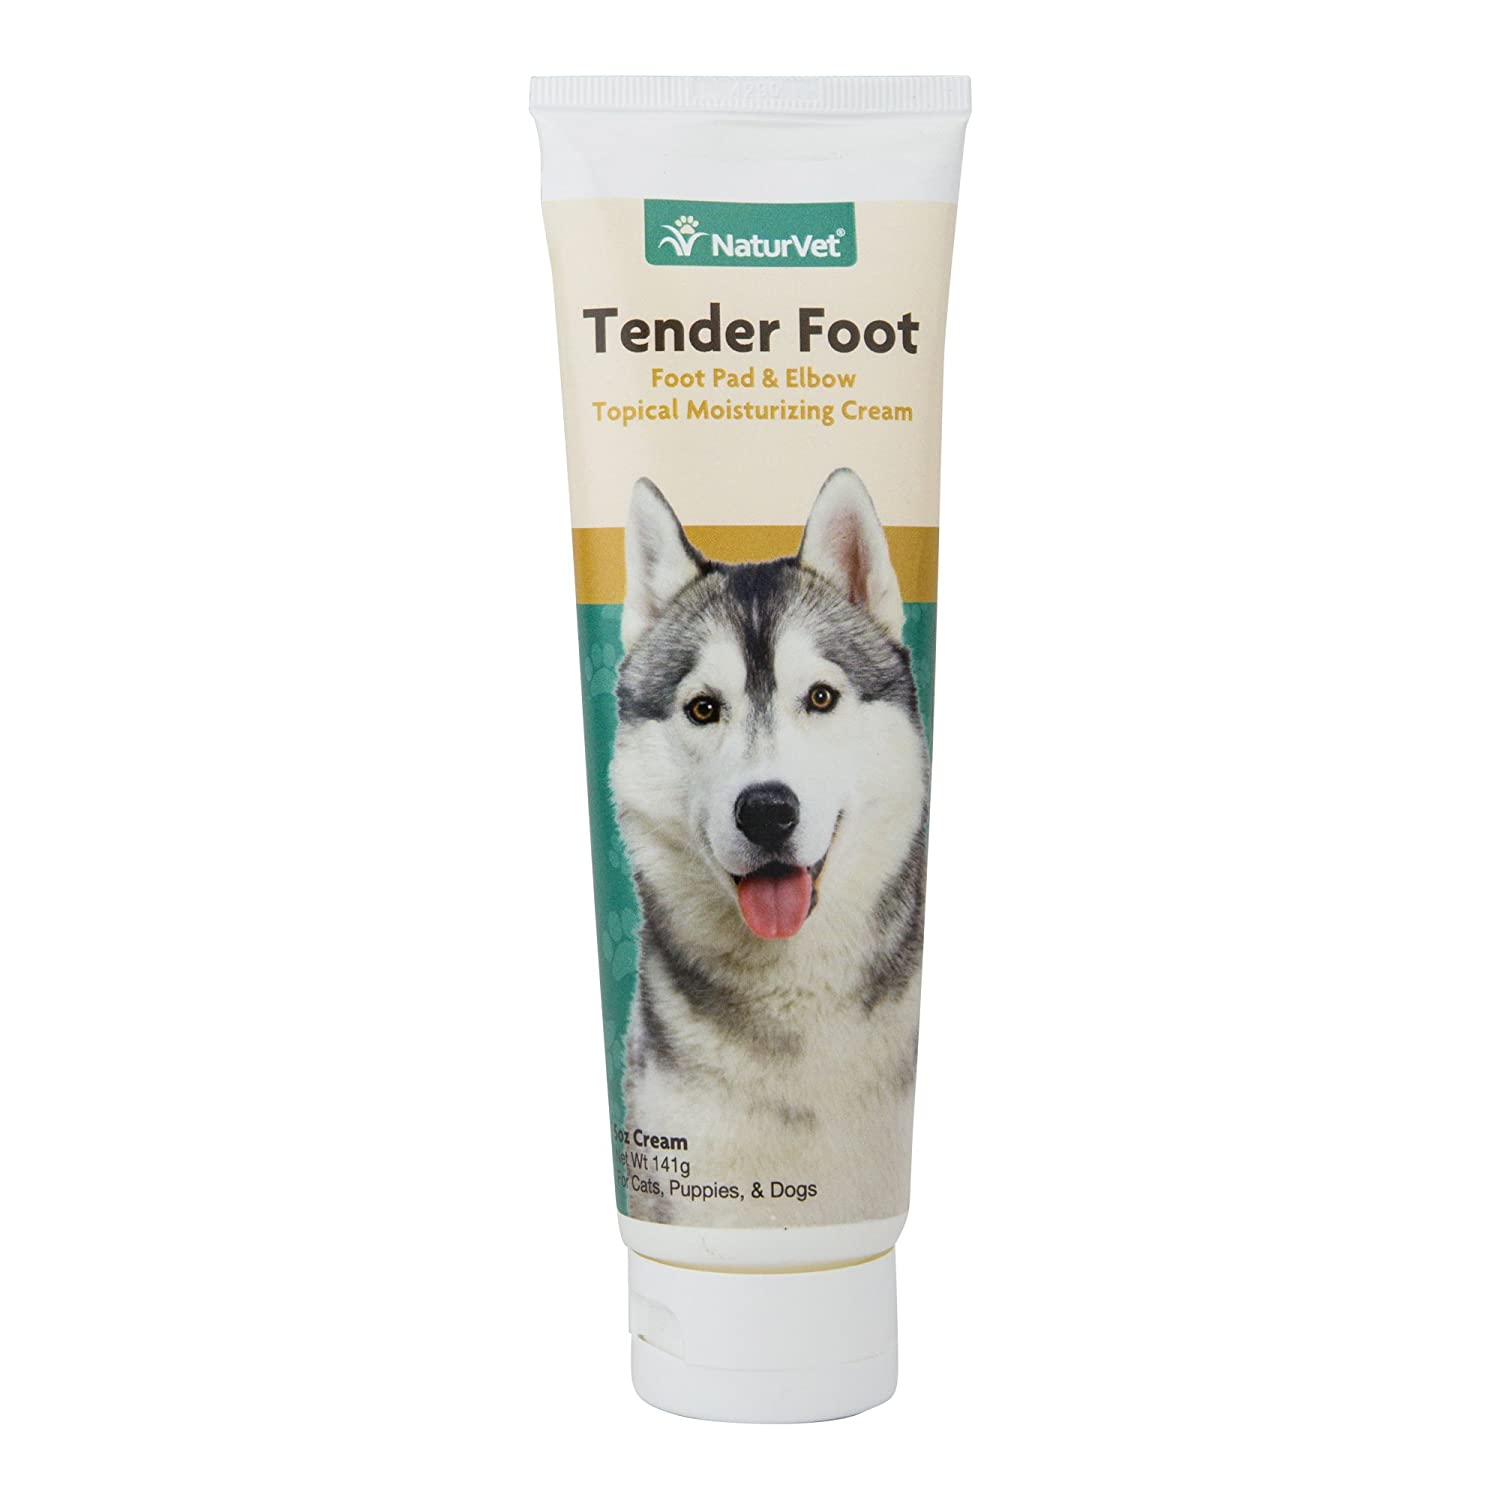 NaturVet Tender Foot, Foot Pad & Elbow Topical Moisturizing Cream for Cats, Puppies and Dogs, 5 oz Cream, Made in USA Garmon Corp 978216